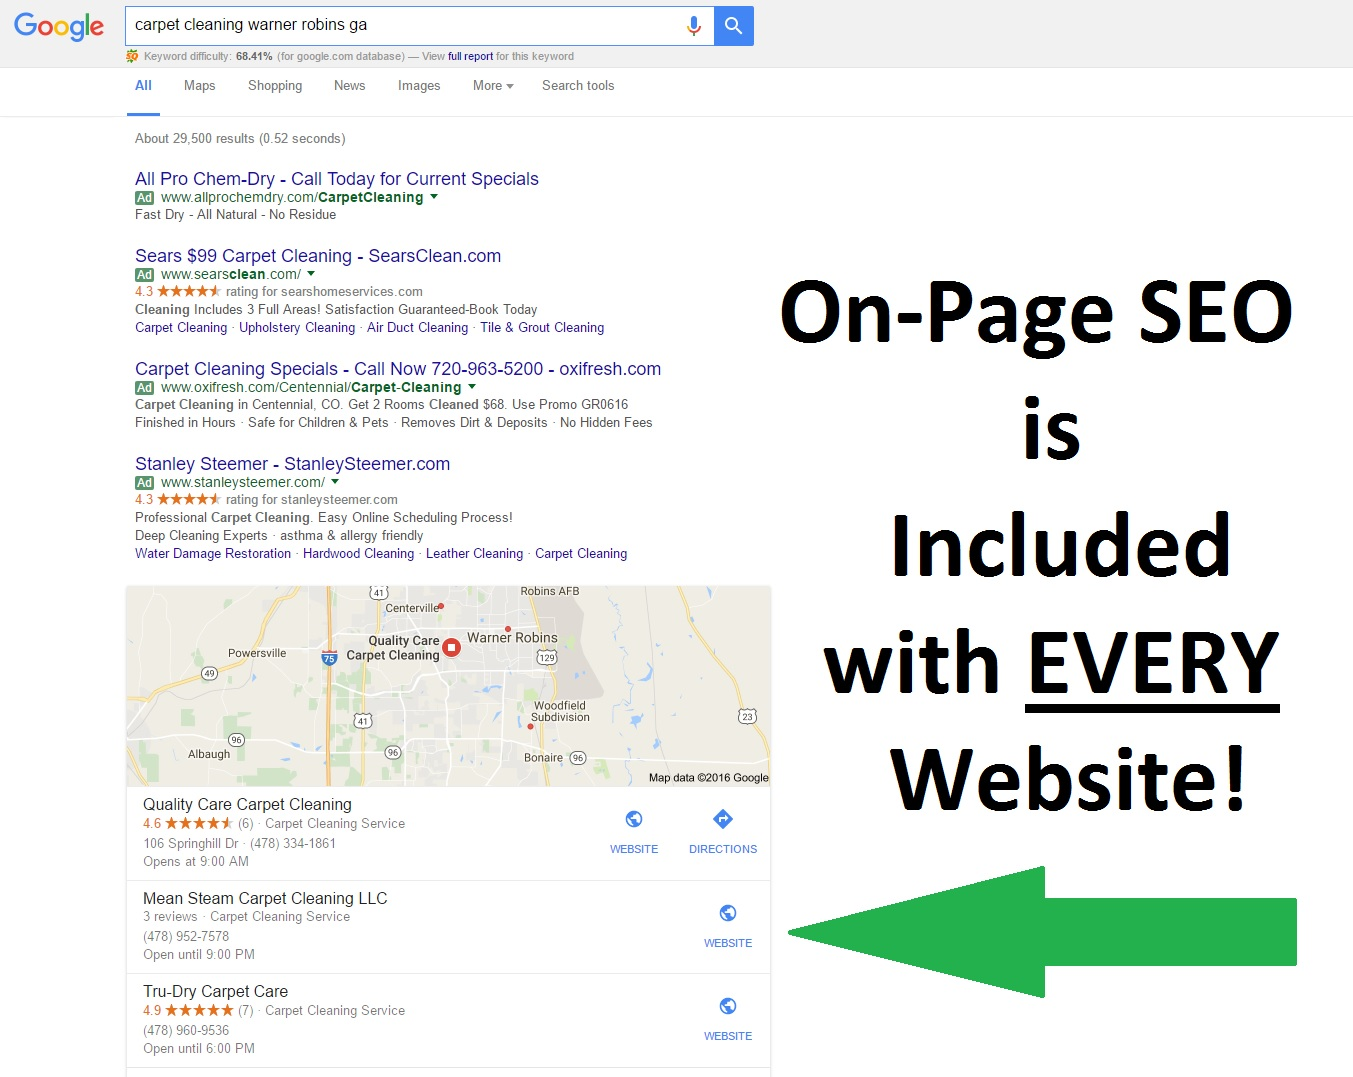 Example of On-Page SEO results with new Mobile Friendly Website